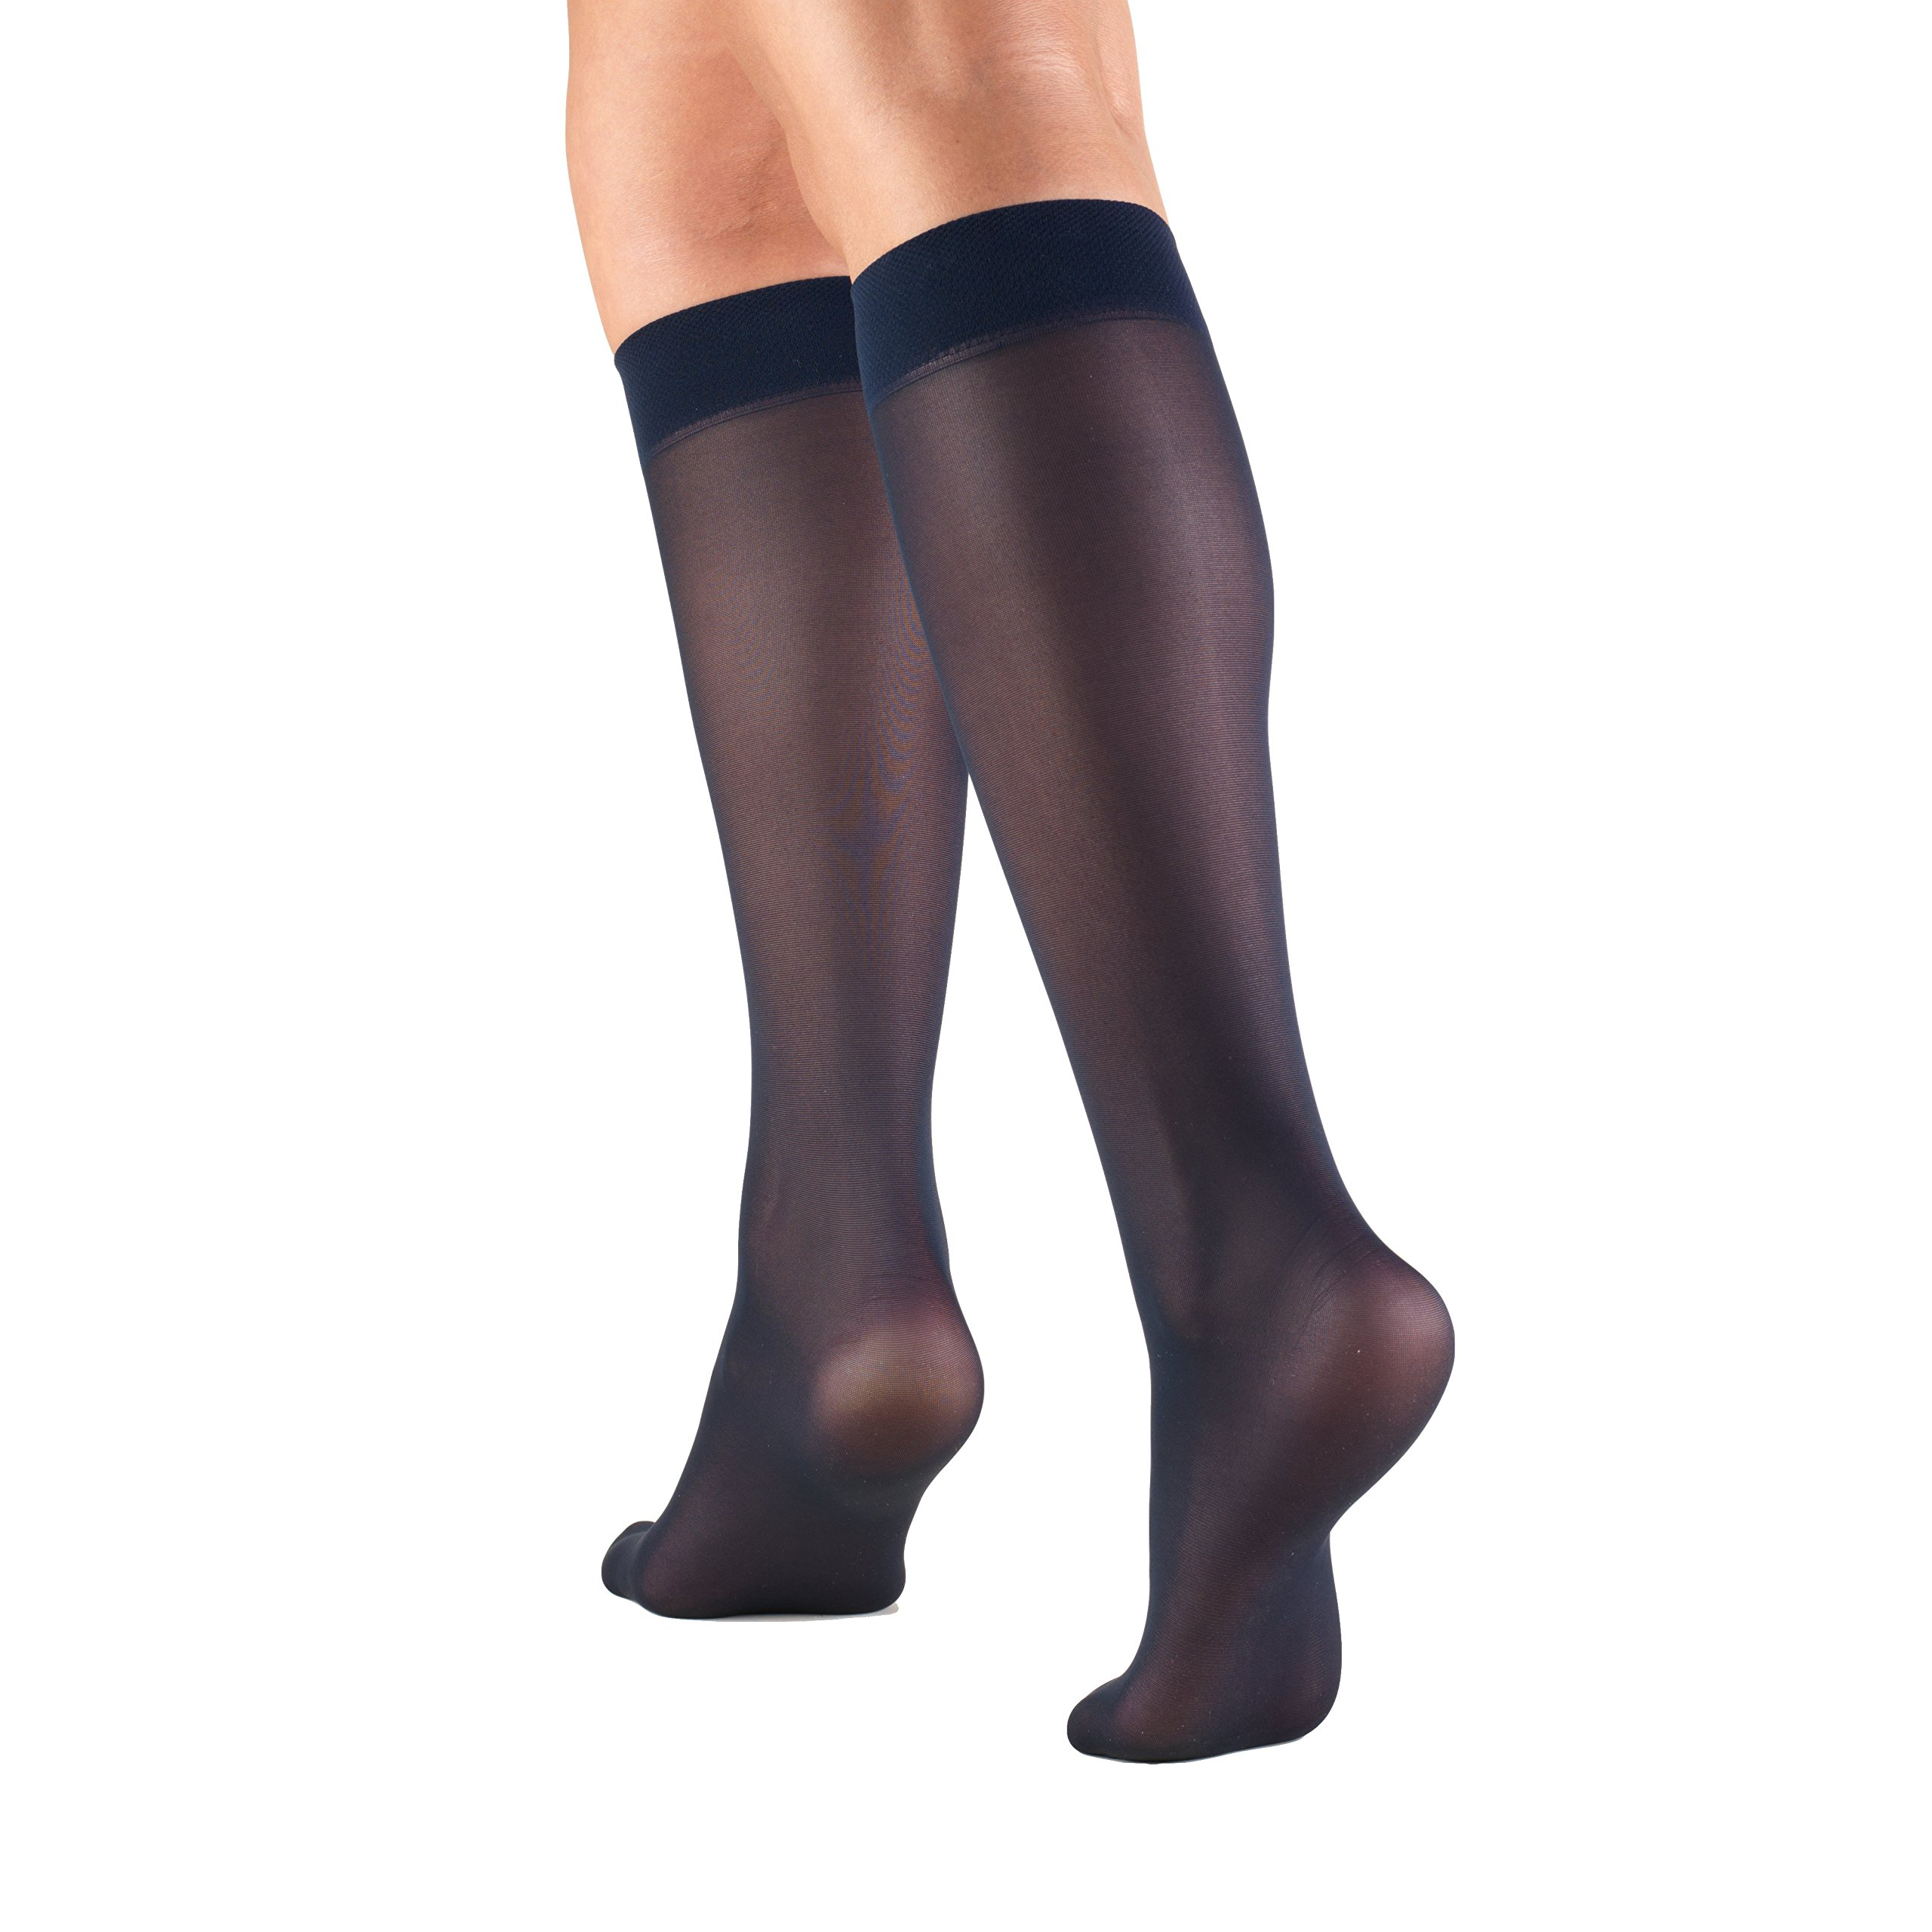 31906815c Amazon.com  Truform Compression Stockings